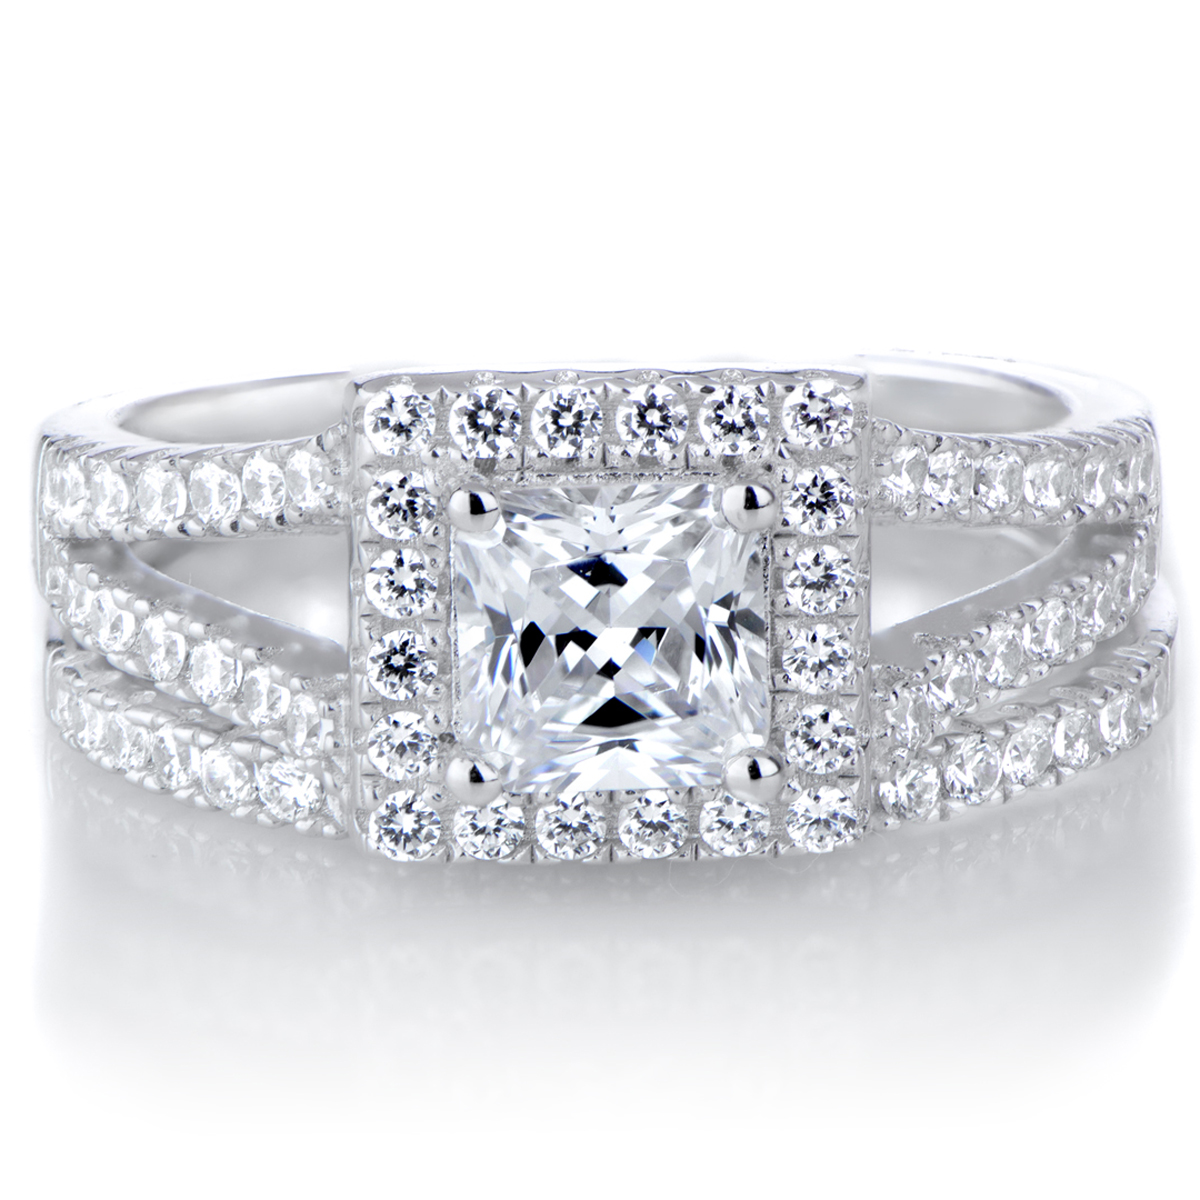 ketties princess cut cz halo wedding ring set - Halo Wedding Ring Set